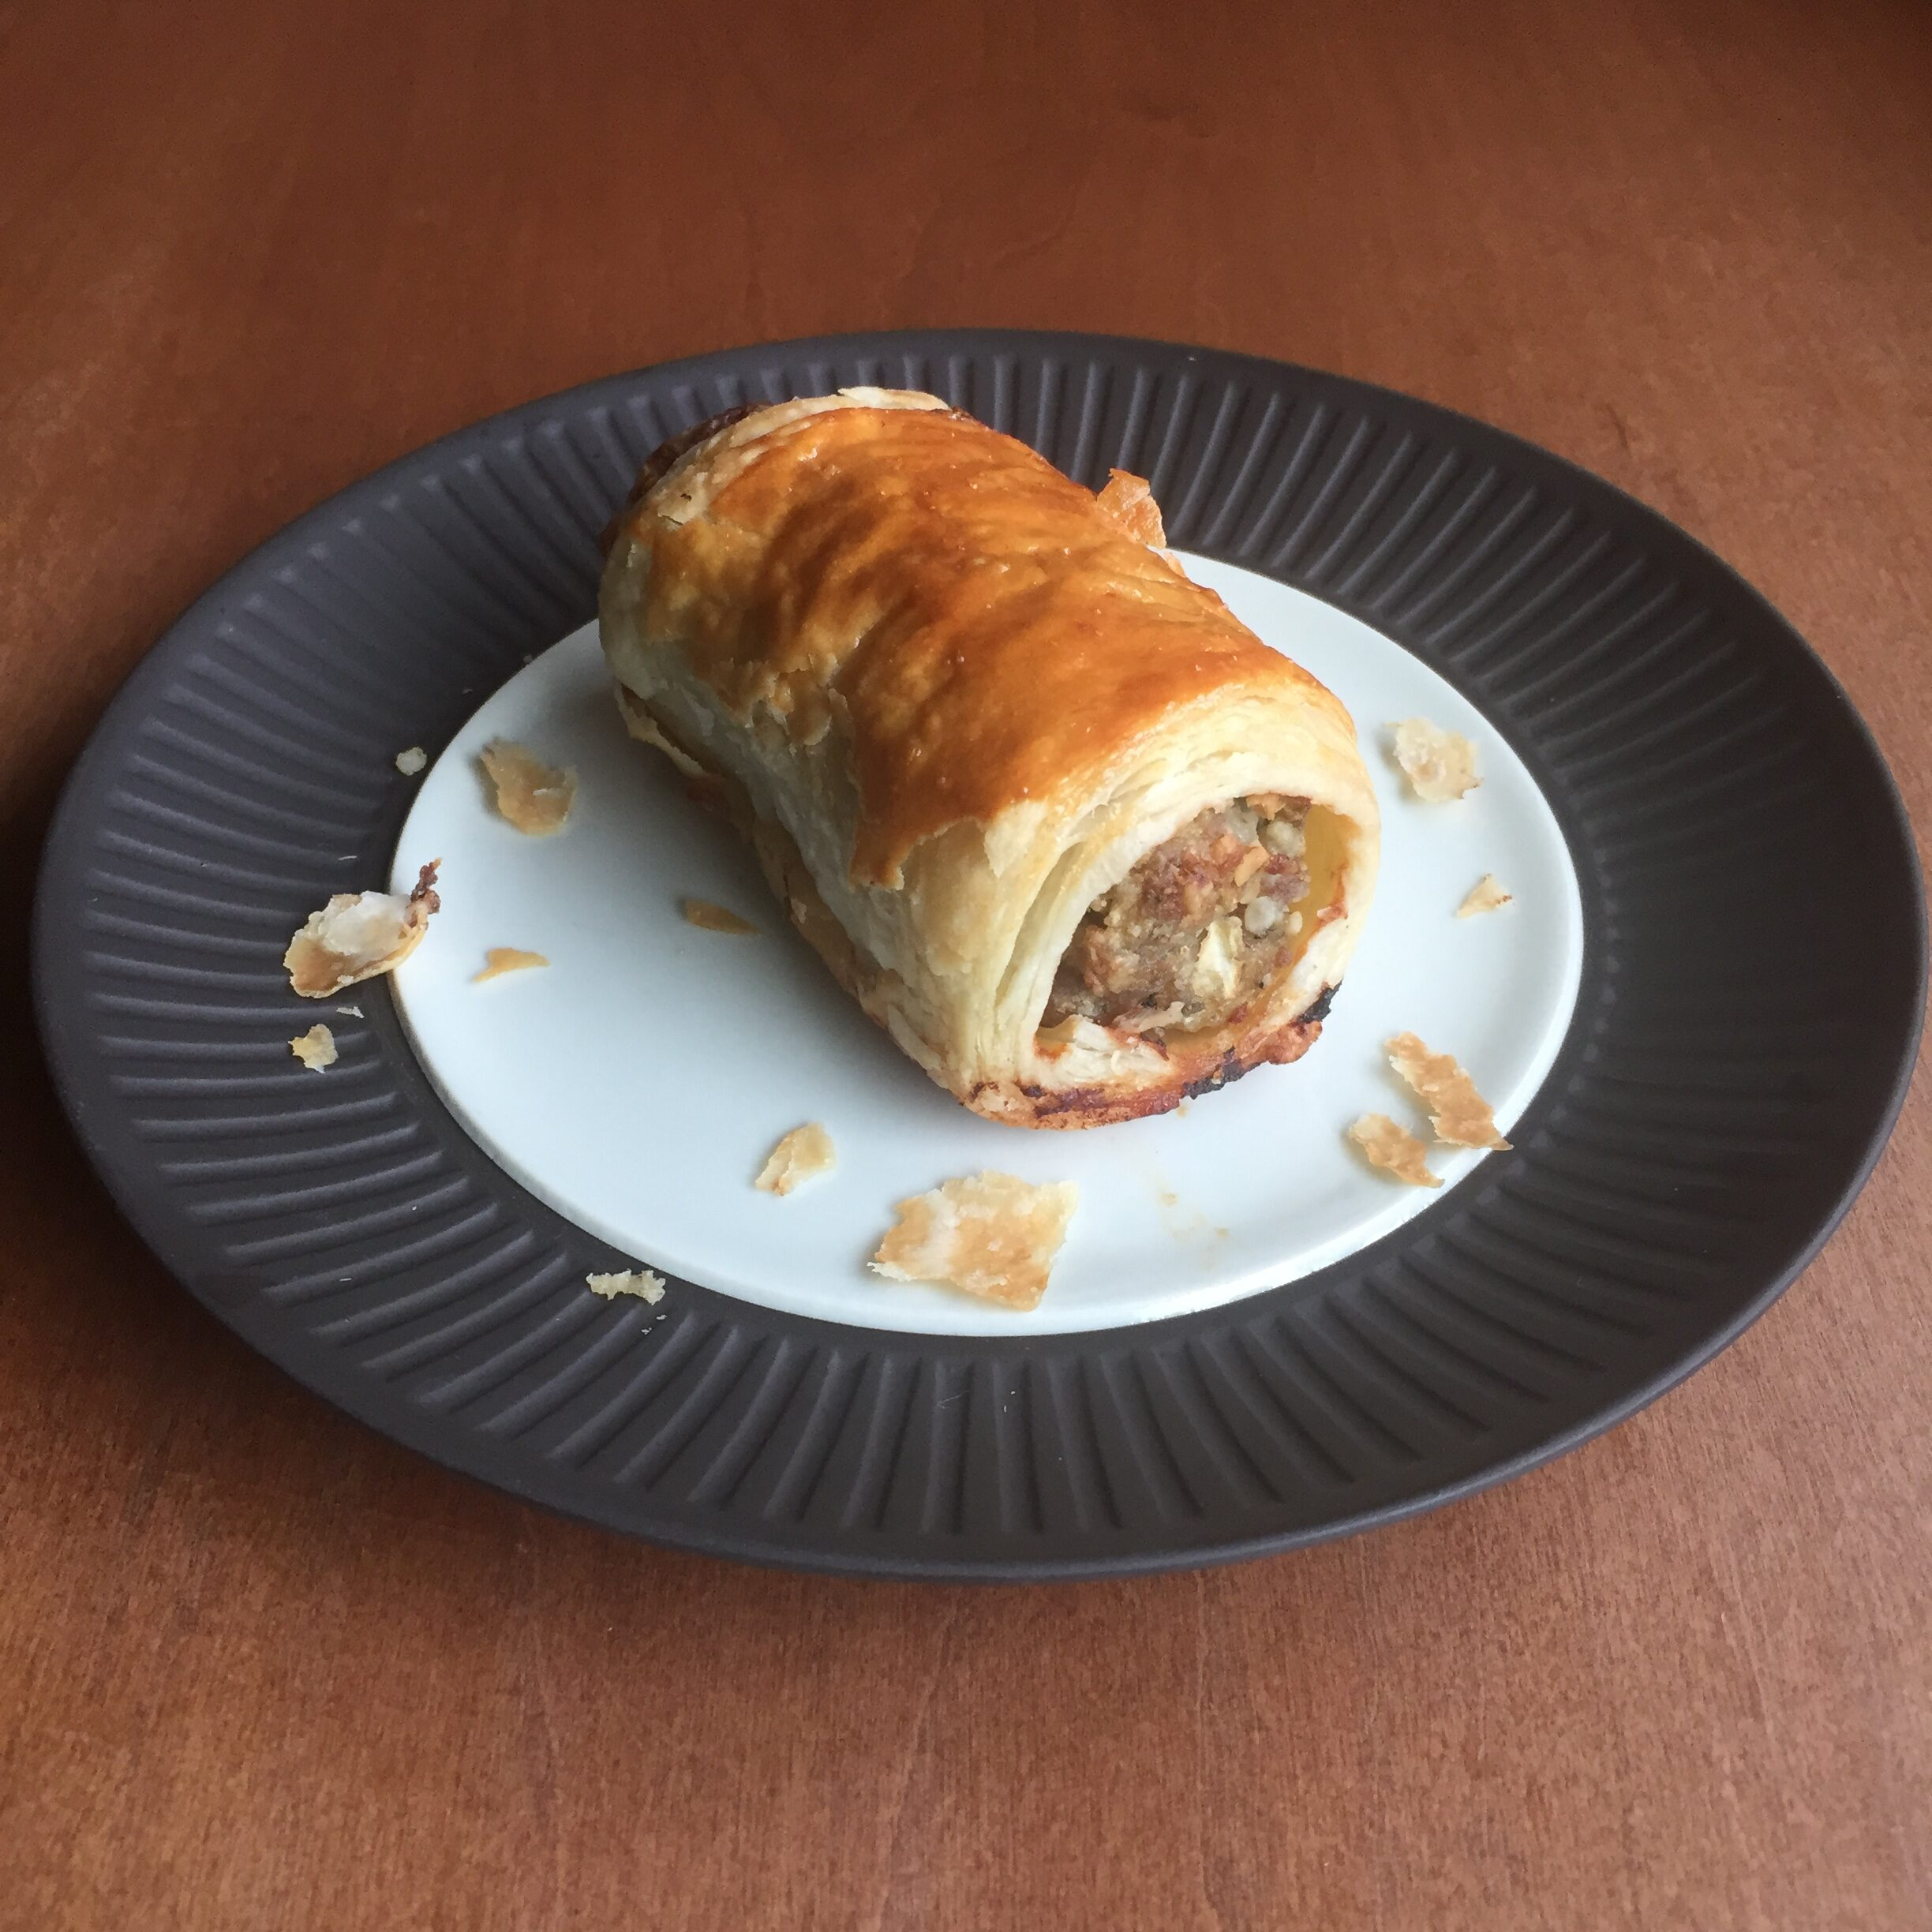 Macadamia nut sausage roll recipe with puff pastry: reddit baking challenge (wk 4)